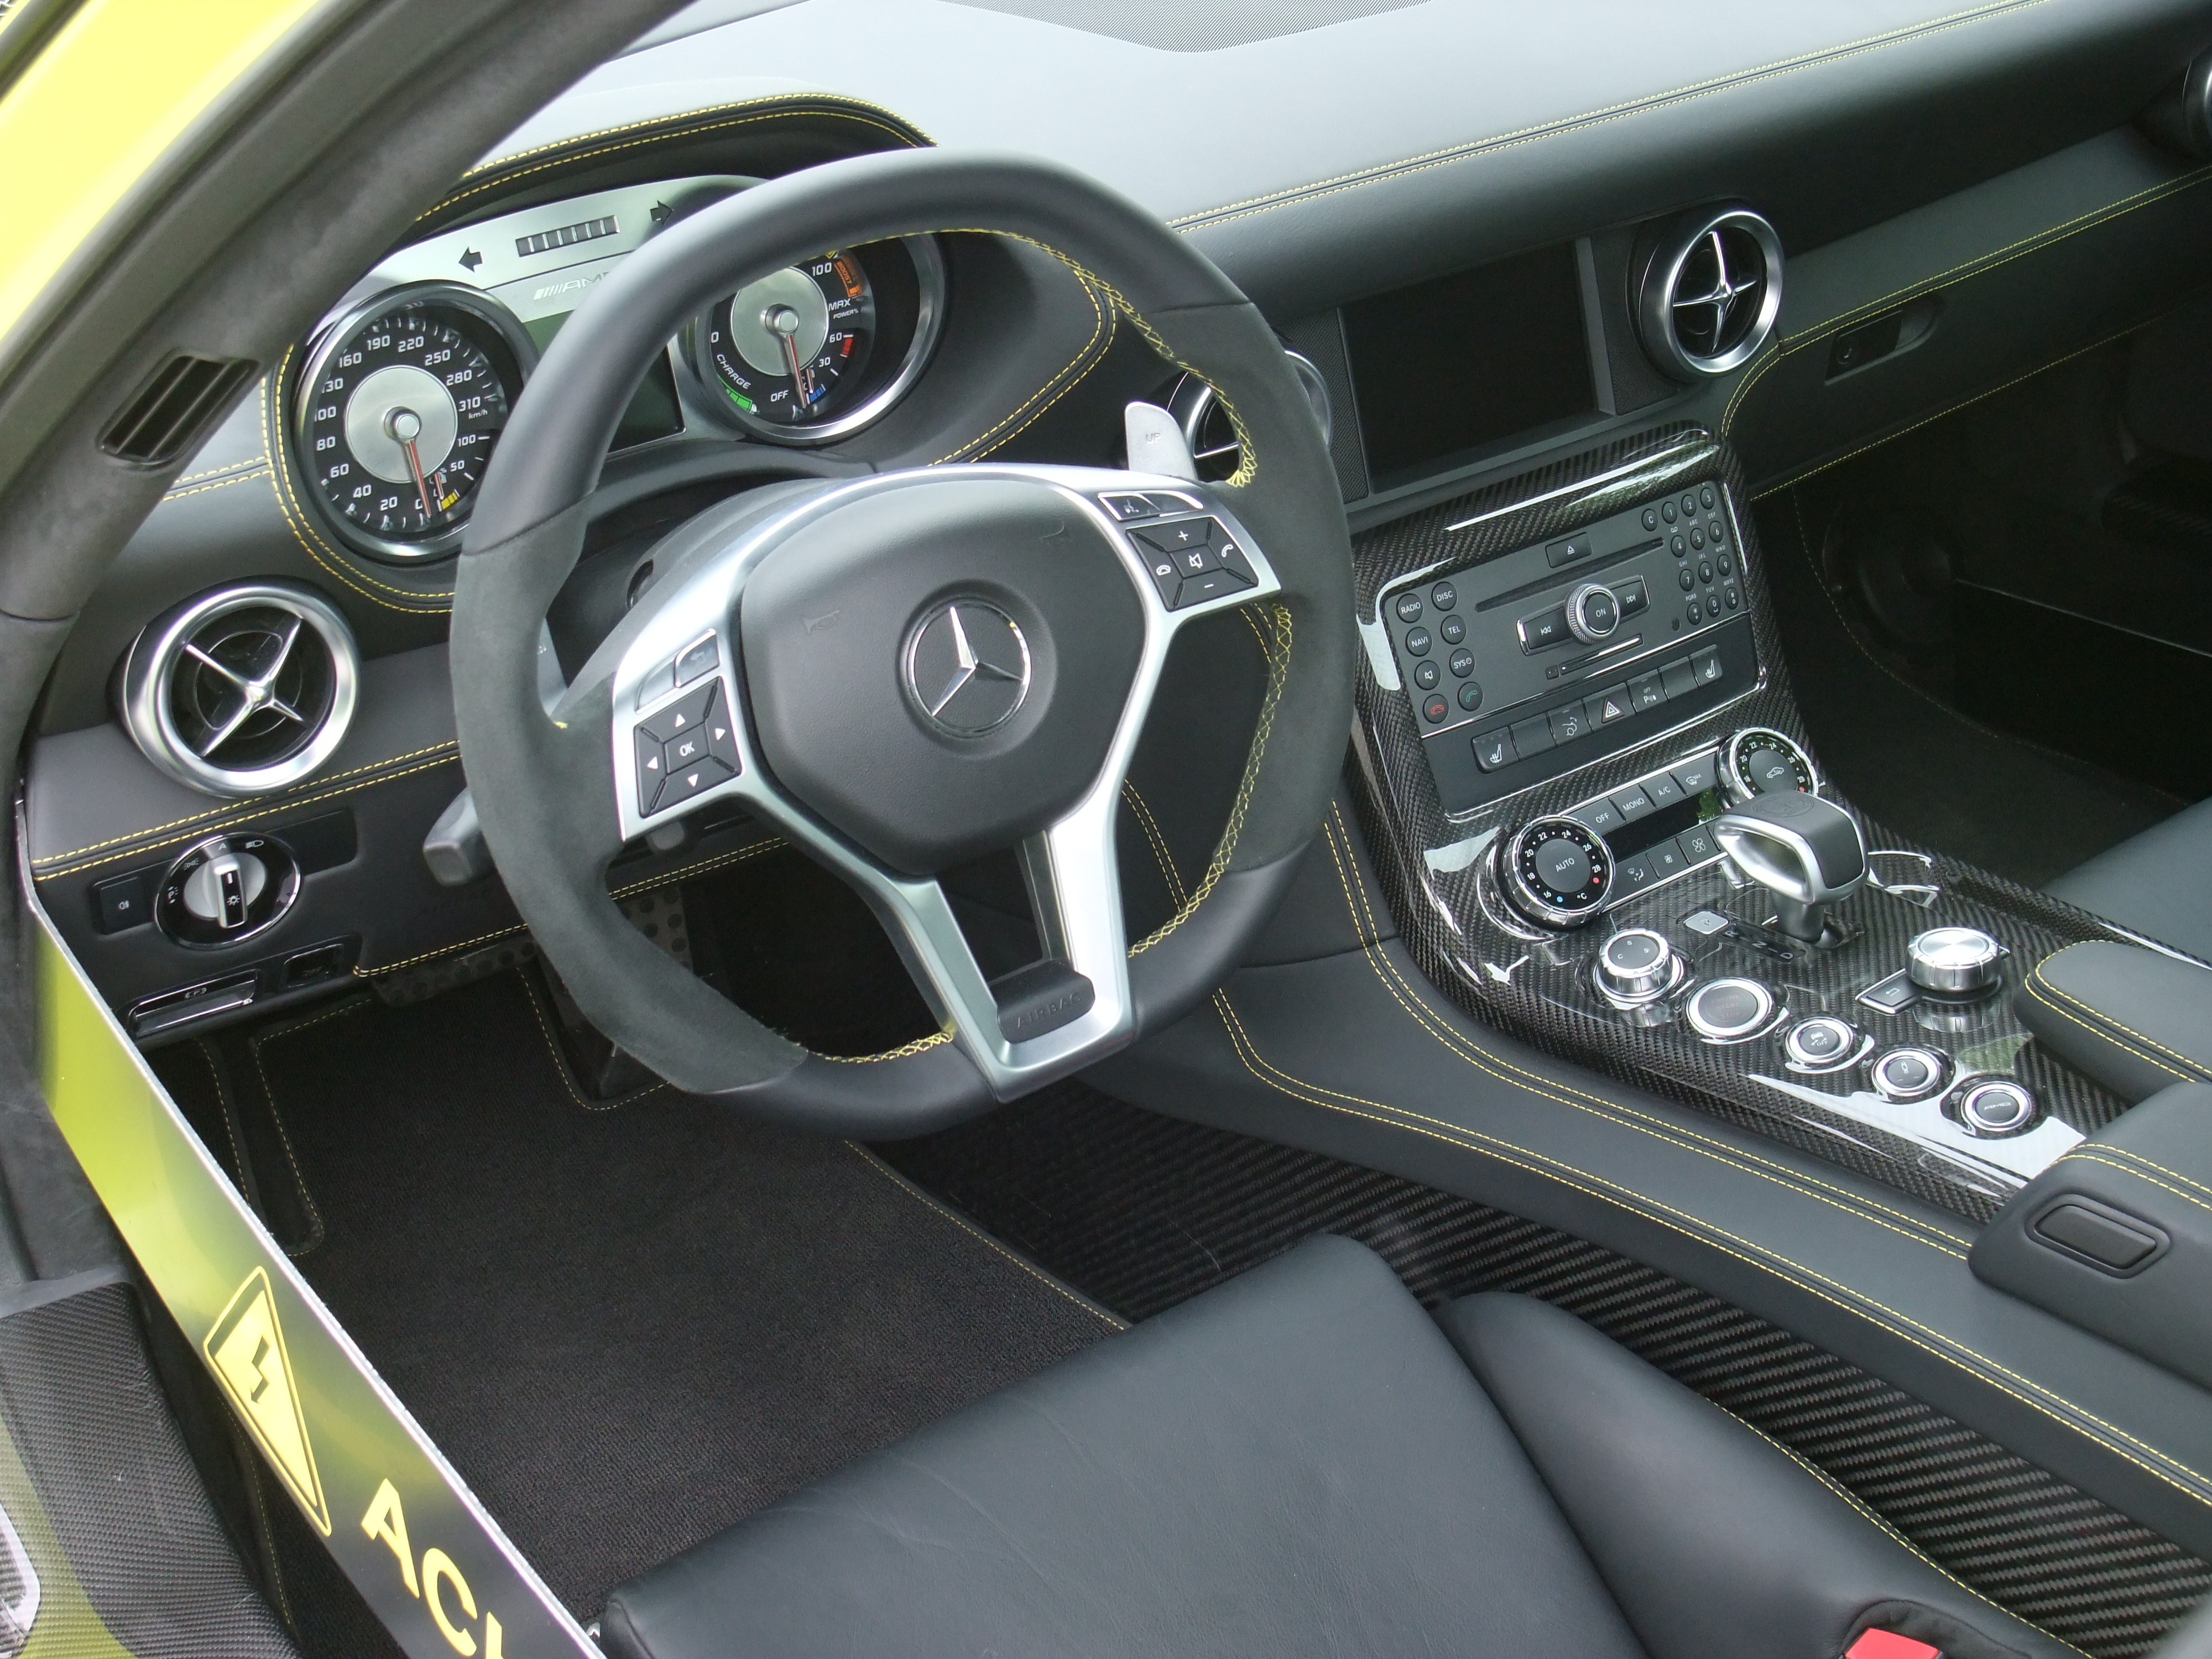 File:SLS Electric Drive Interior.jpg - Wikimedia Commons